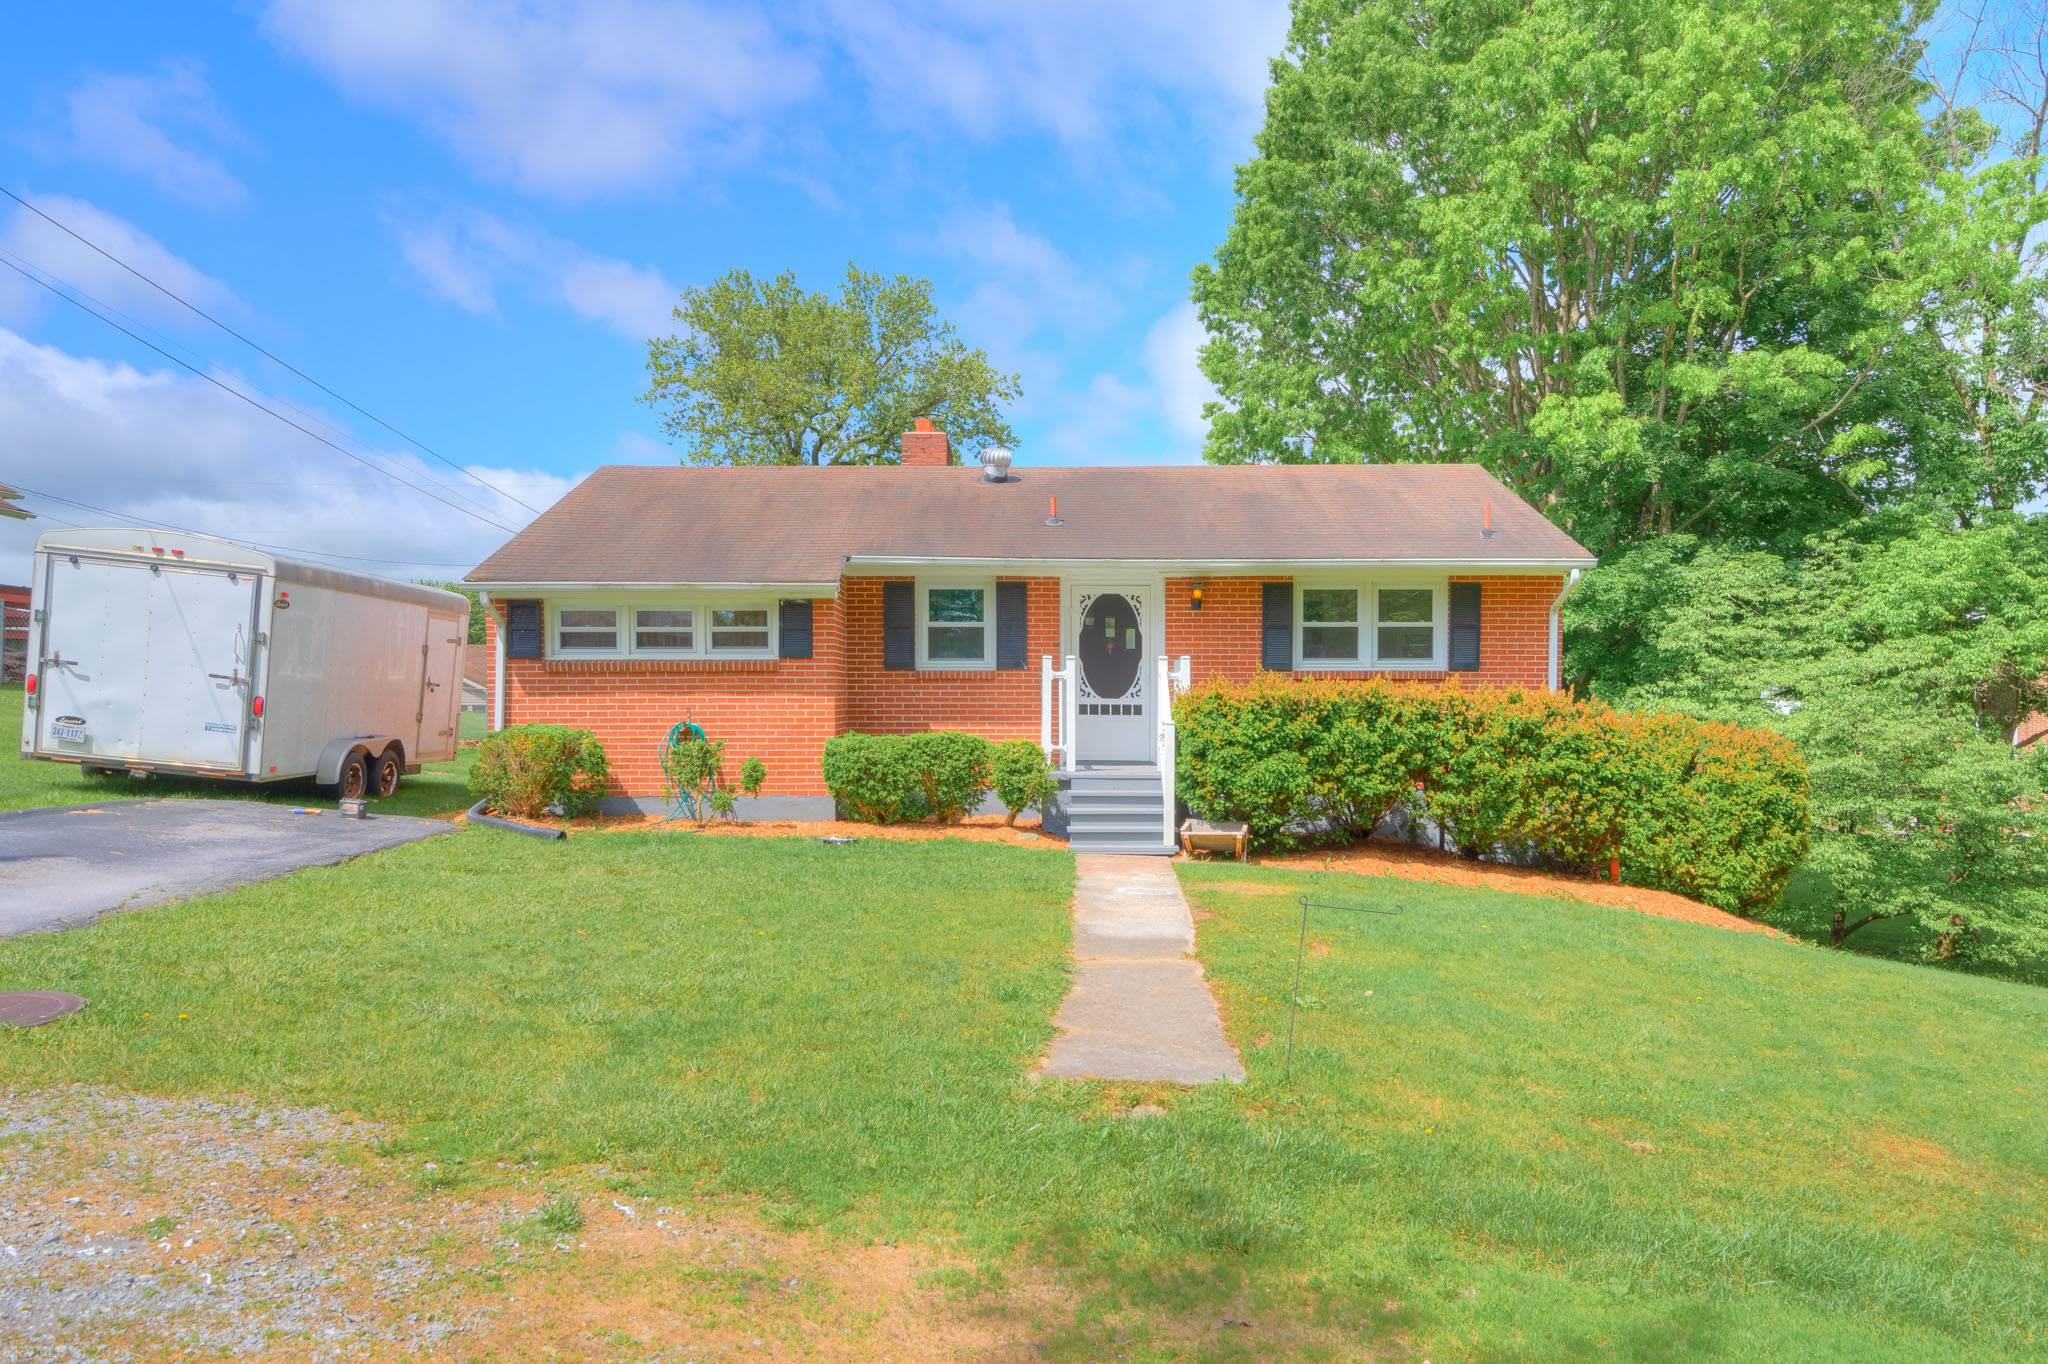 Come check out this brick home that sits on large double lot. This cute home comes equipped with hardwood floors, a fireplace and a full basement with plenty of storage opportunity.